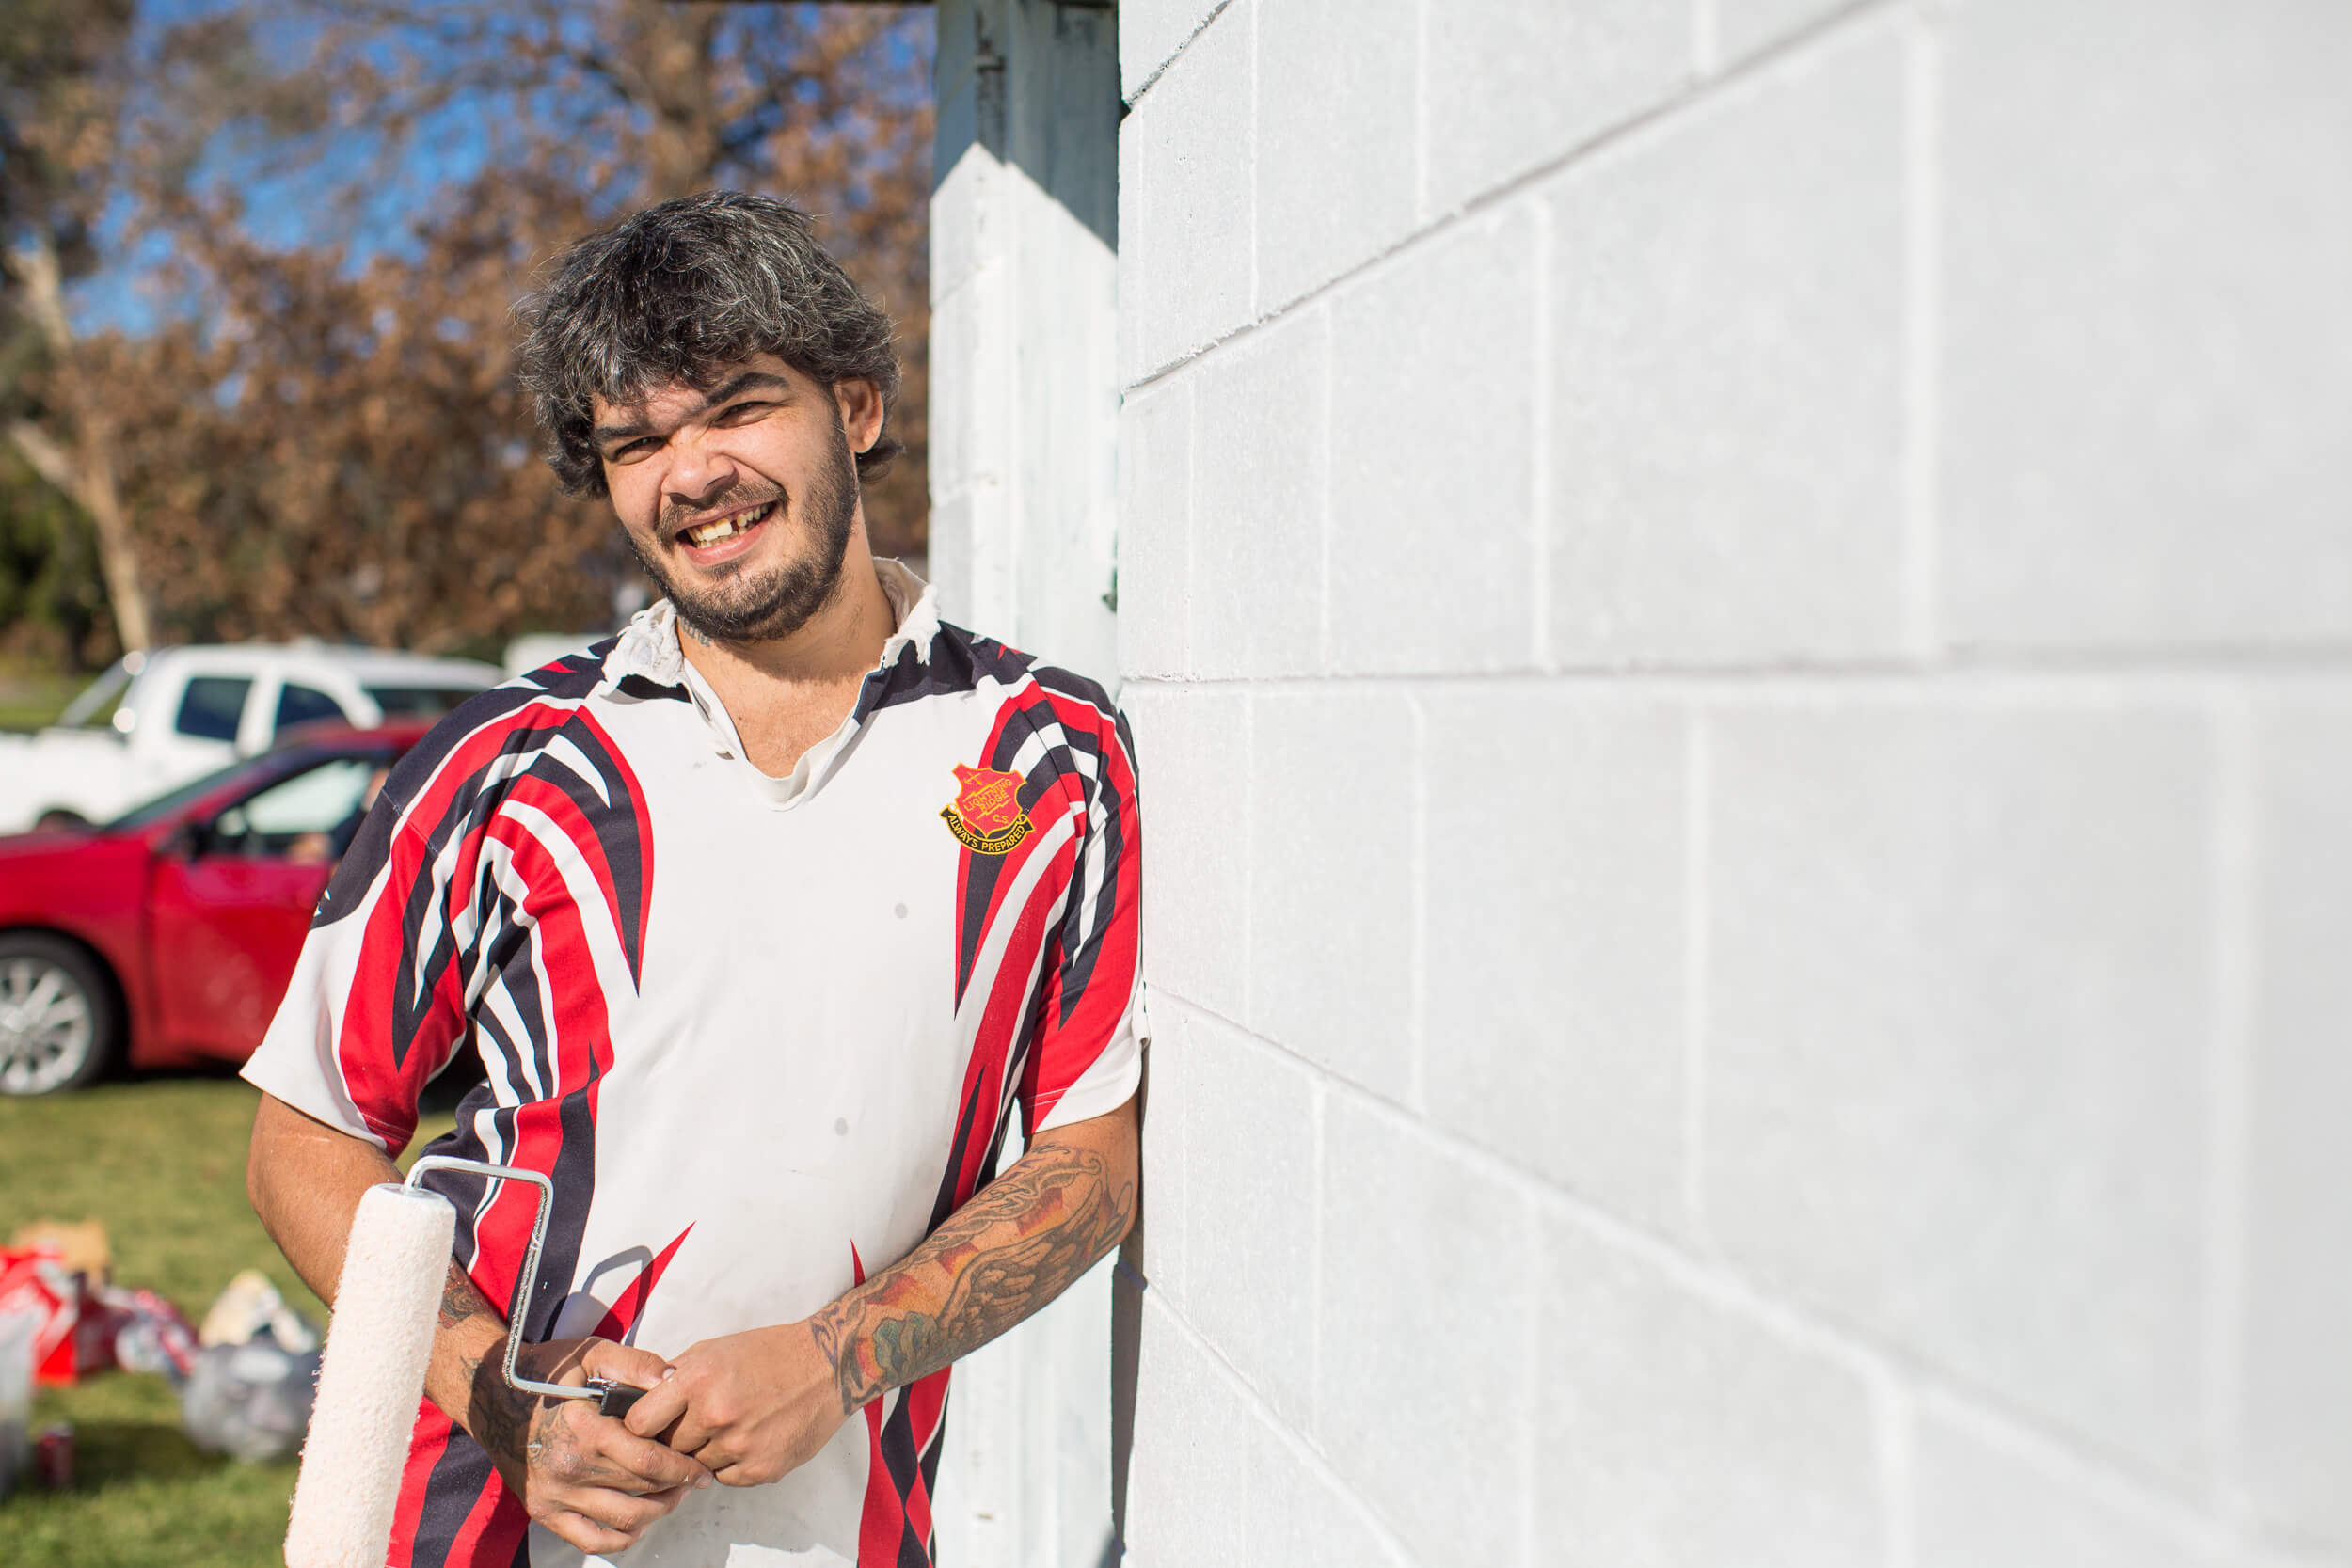 A first Australian Aboriginal man standing and grinning towards the camera. He has black and gray hair. He is wearing a red, white and black Rugby union jumper. He is standing beside a white cinderblock building with two cars, colored red and white, in the background. The skyscape features deciduous trees whose leaves are turning brown.